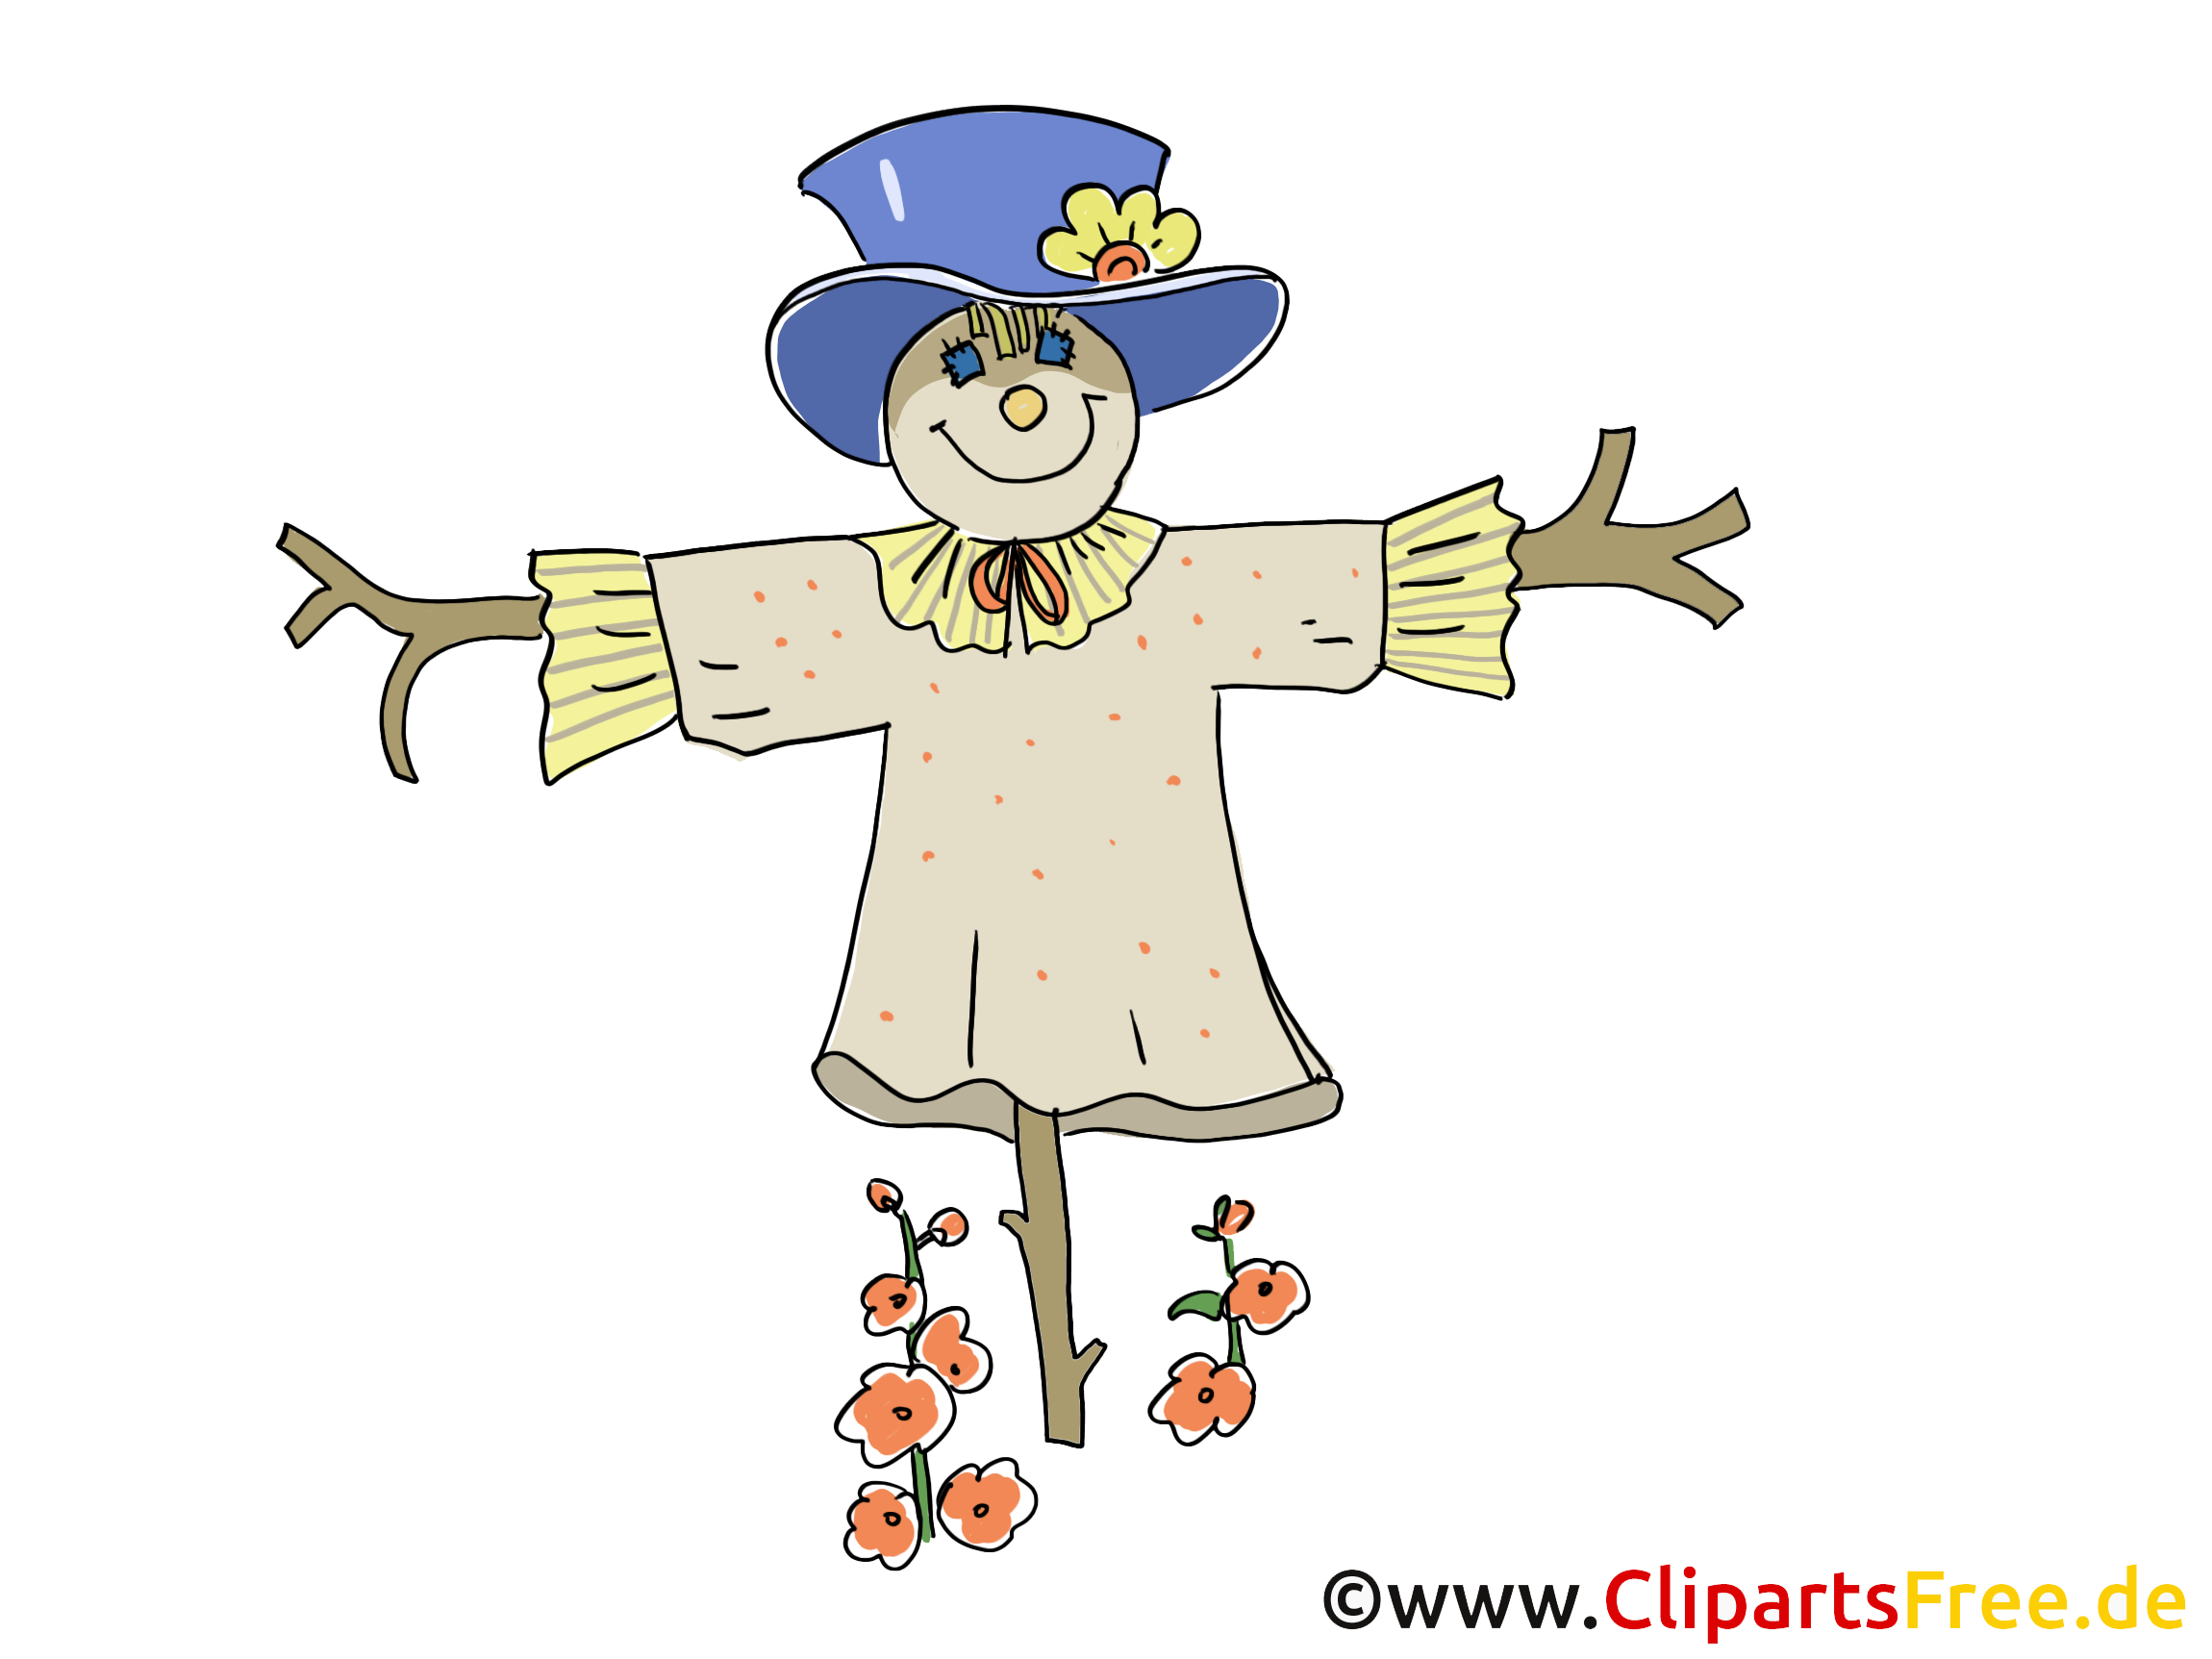 Scheuche Bild, Cartoon, Clipart gratis